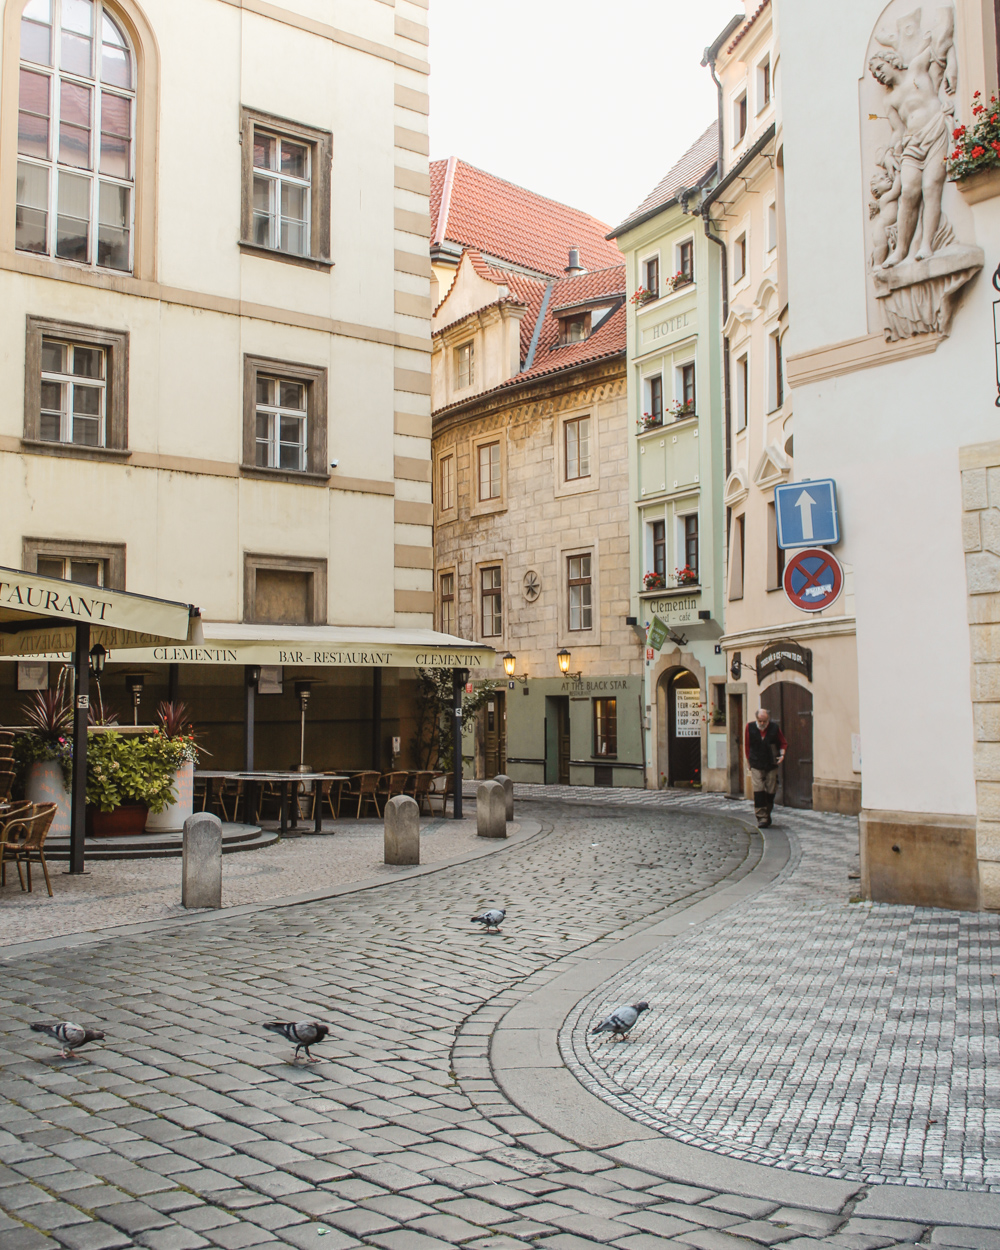 Two days in Prague